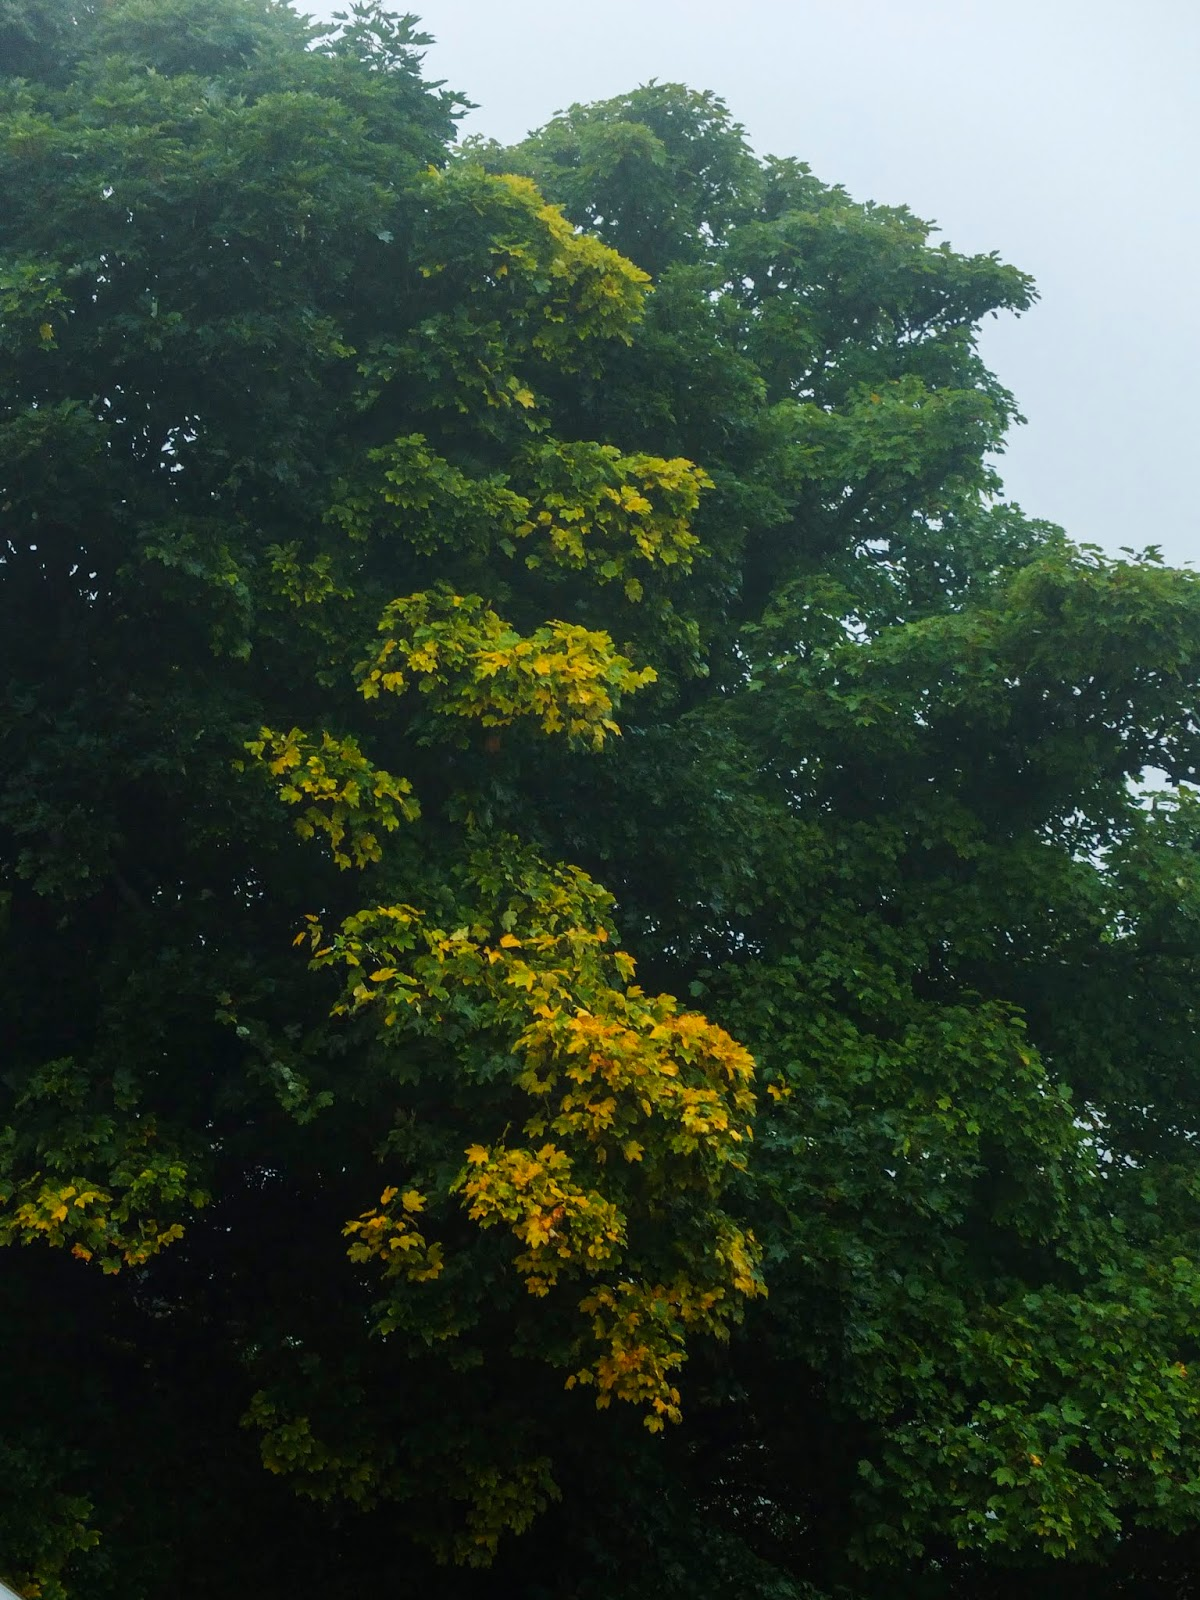 Maple tree leaves beginning to change their colour and yellowing on the edges.